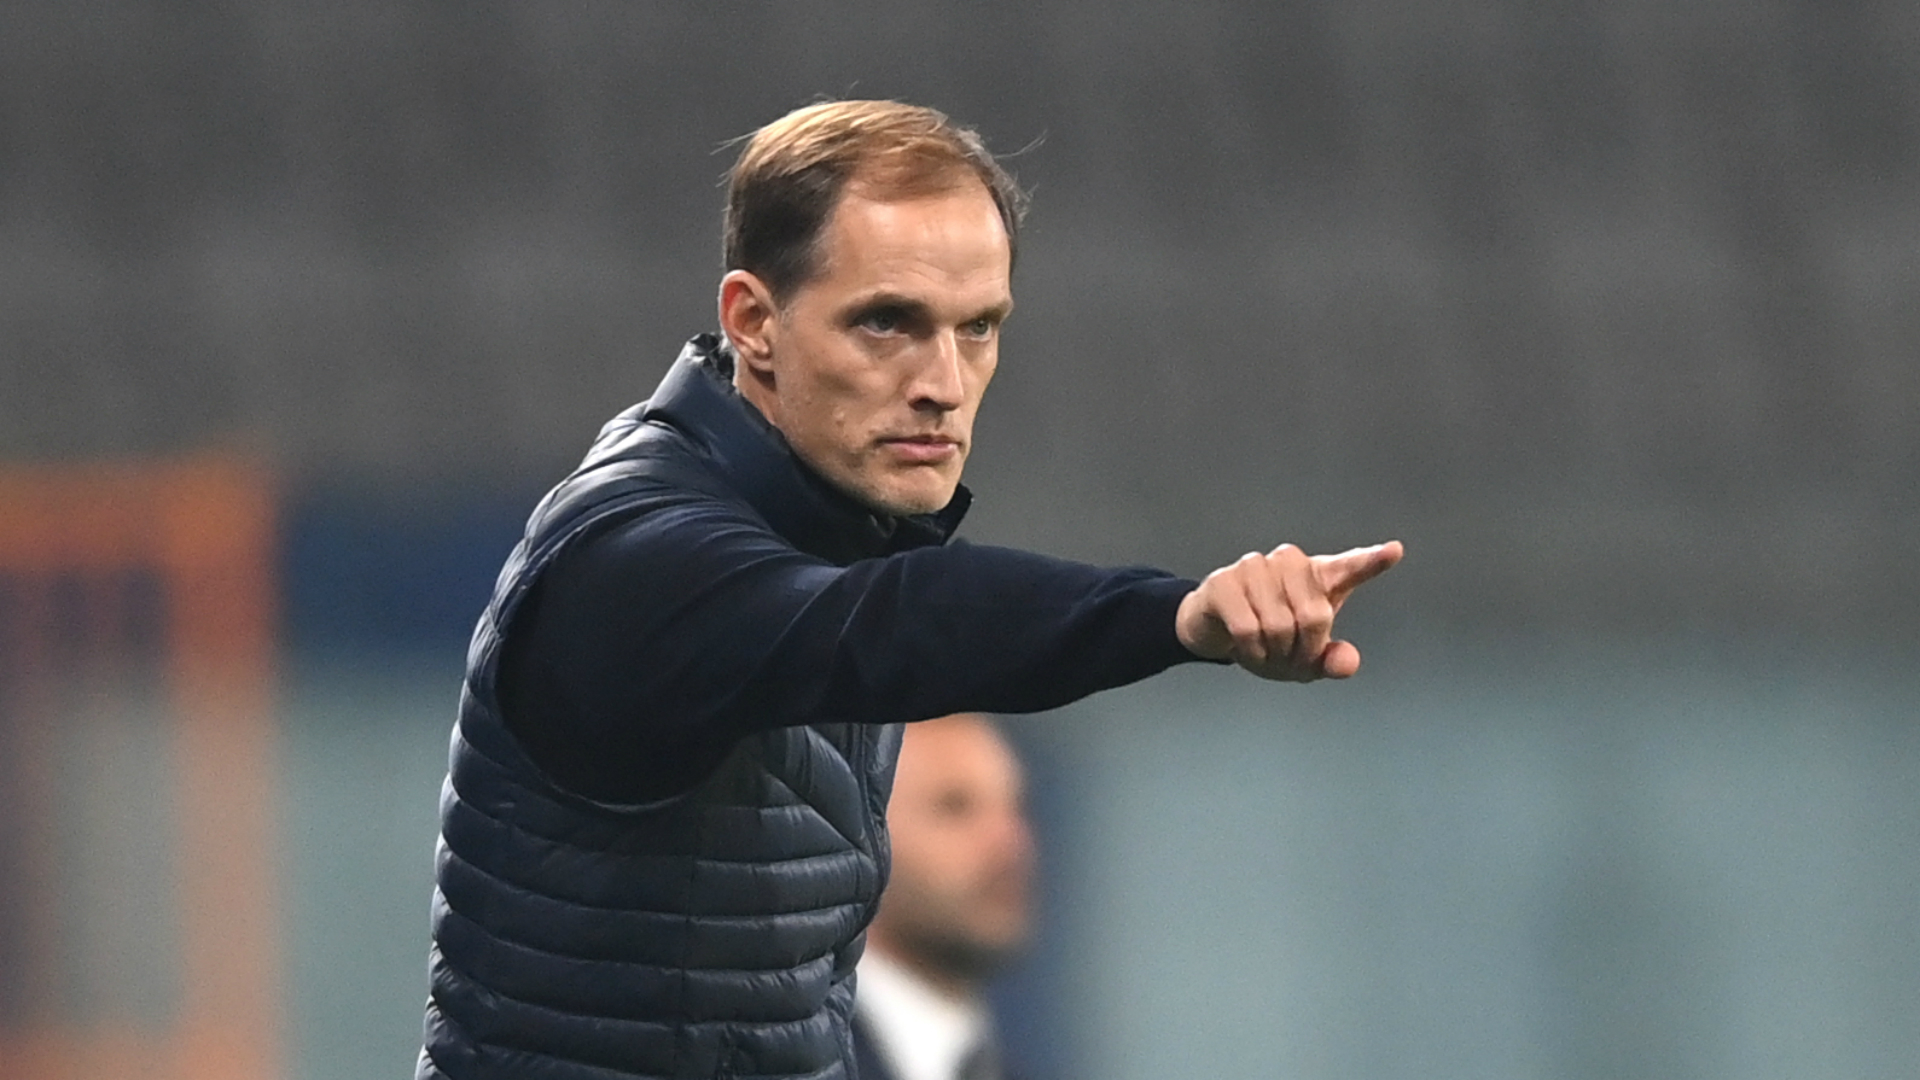 I like the challenge of managing PSG - Tuchel clears up 'mistranslated' comments